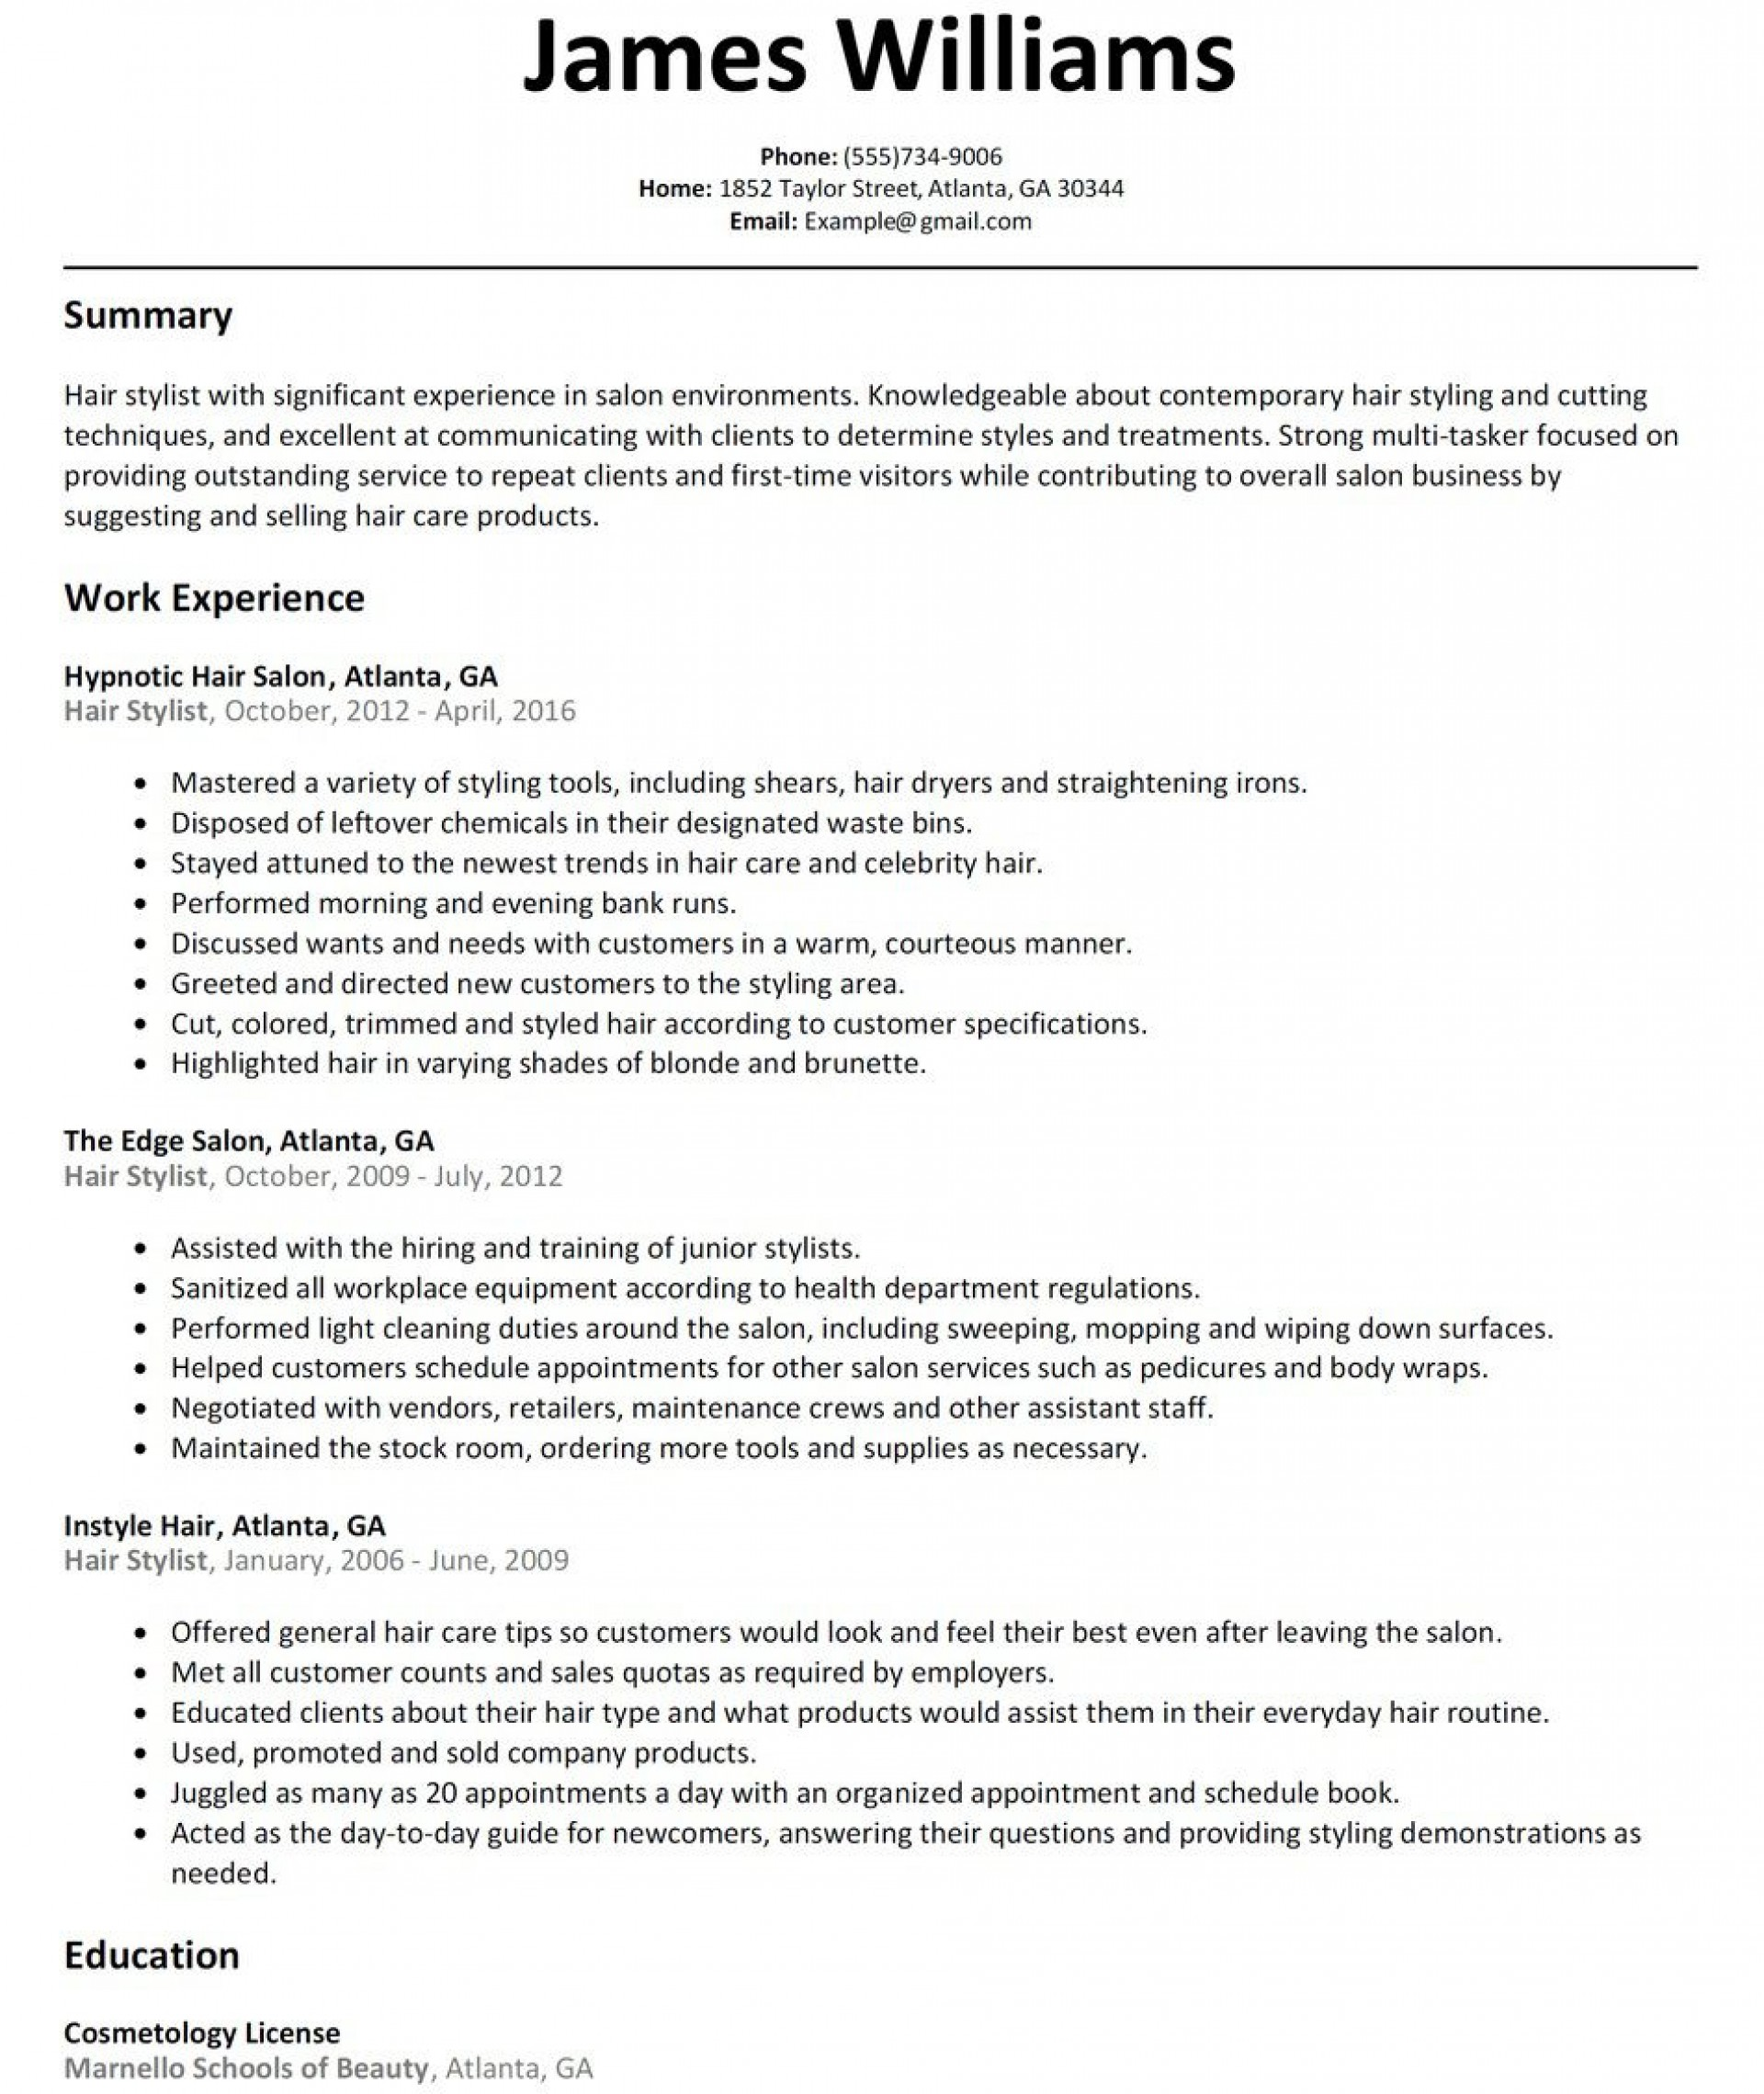 005 Rare Hair Stylist Resume Template High Def  Word Free Download1920